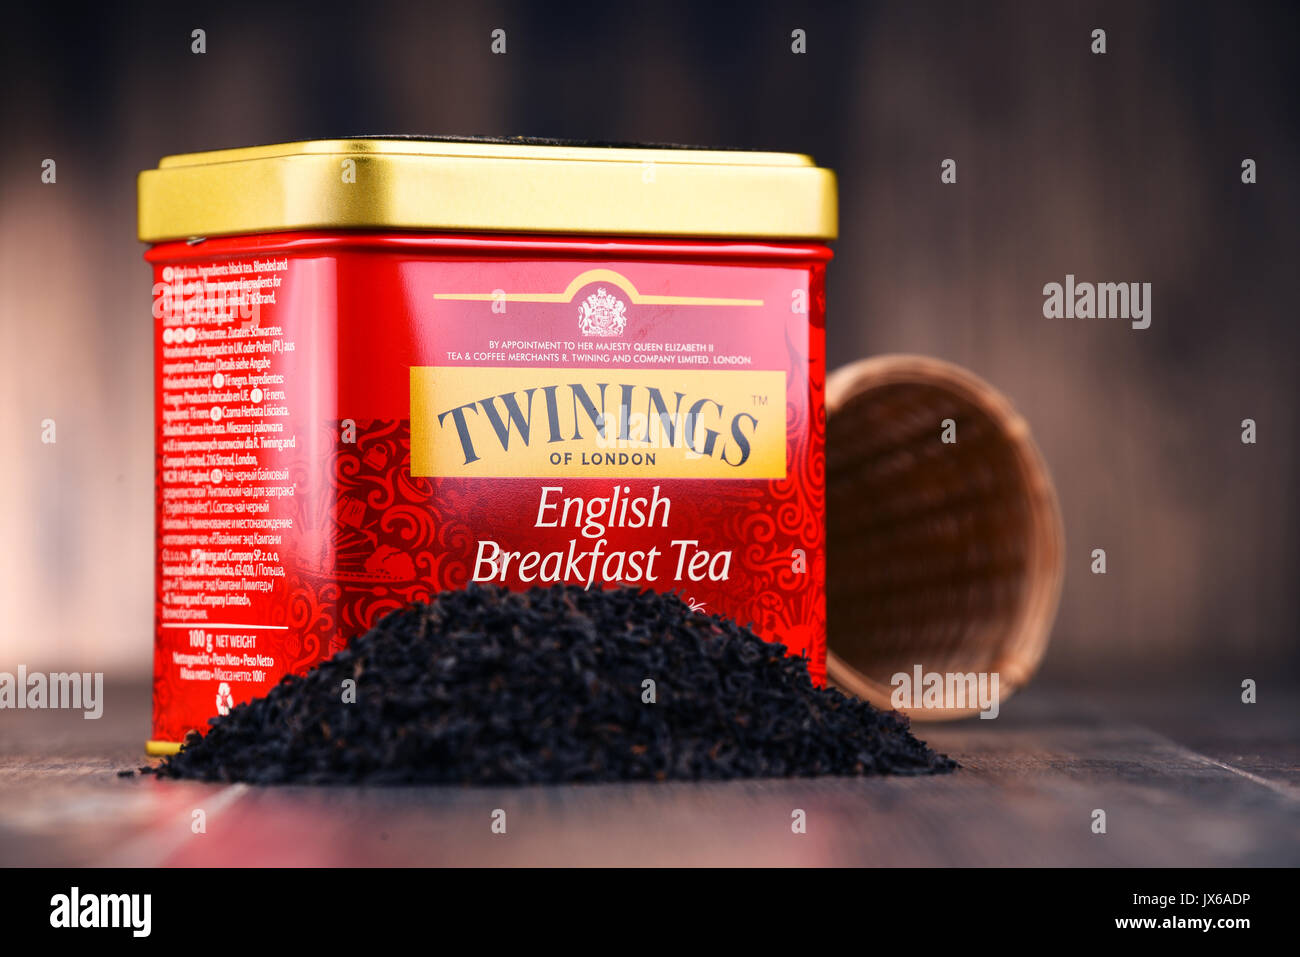 POZNAN, POLAND - JULY 7, 2017: Twinings is an English marketer of tea, located in Andover, Hampshire. The brand is owned by Associated British Foods. - Stock Image